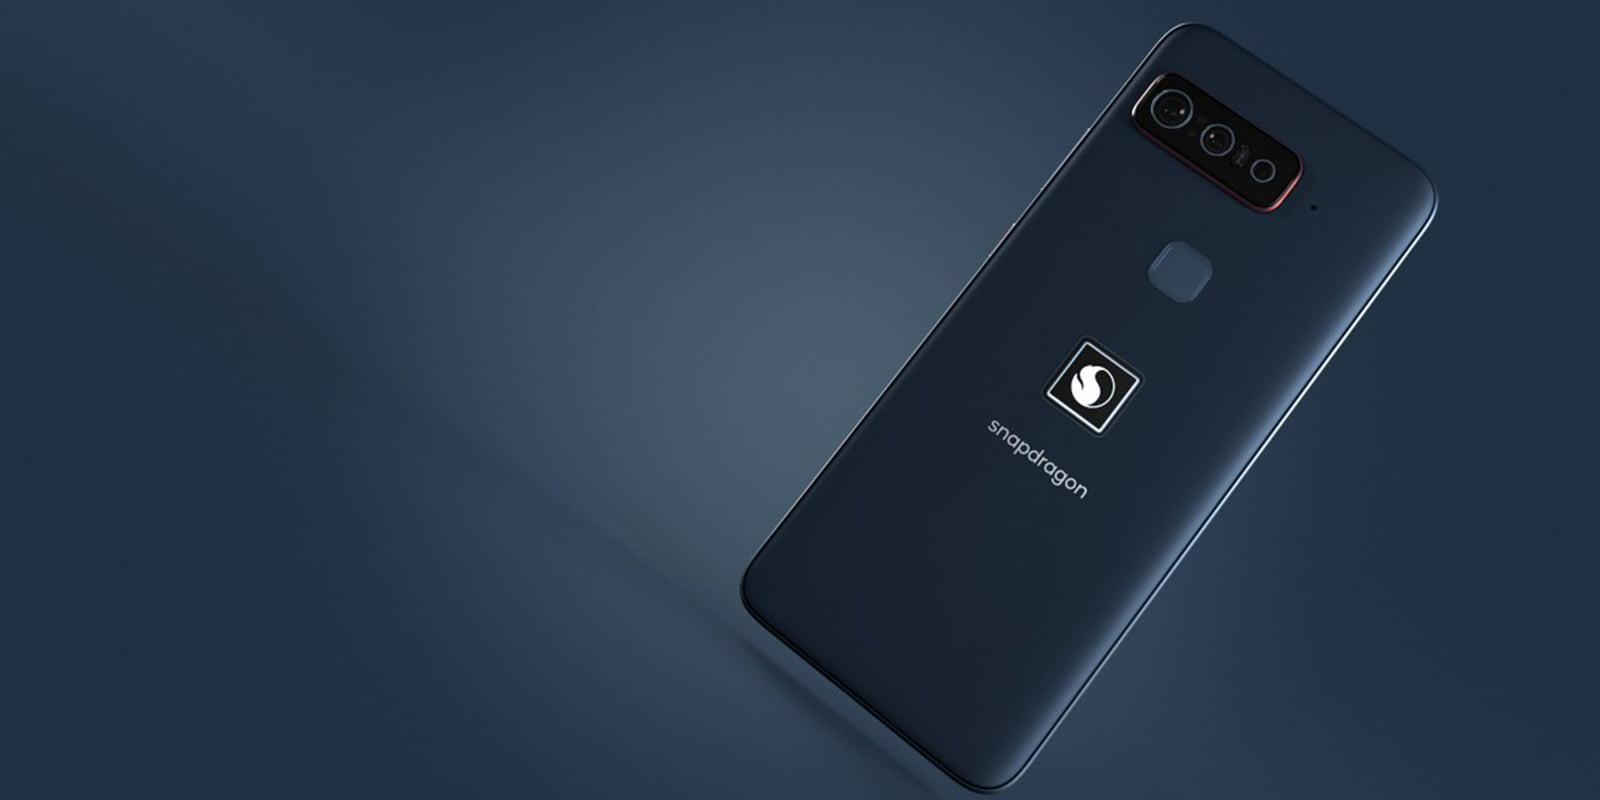 """Qualcomm announces """"Smartphone for Snapdragon Insiders"""" for $1,500"""